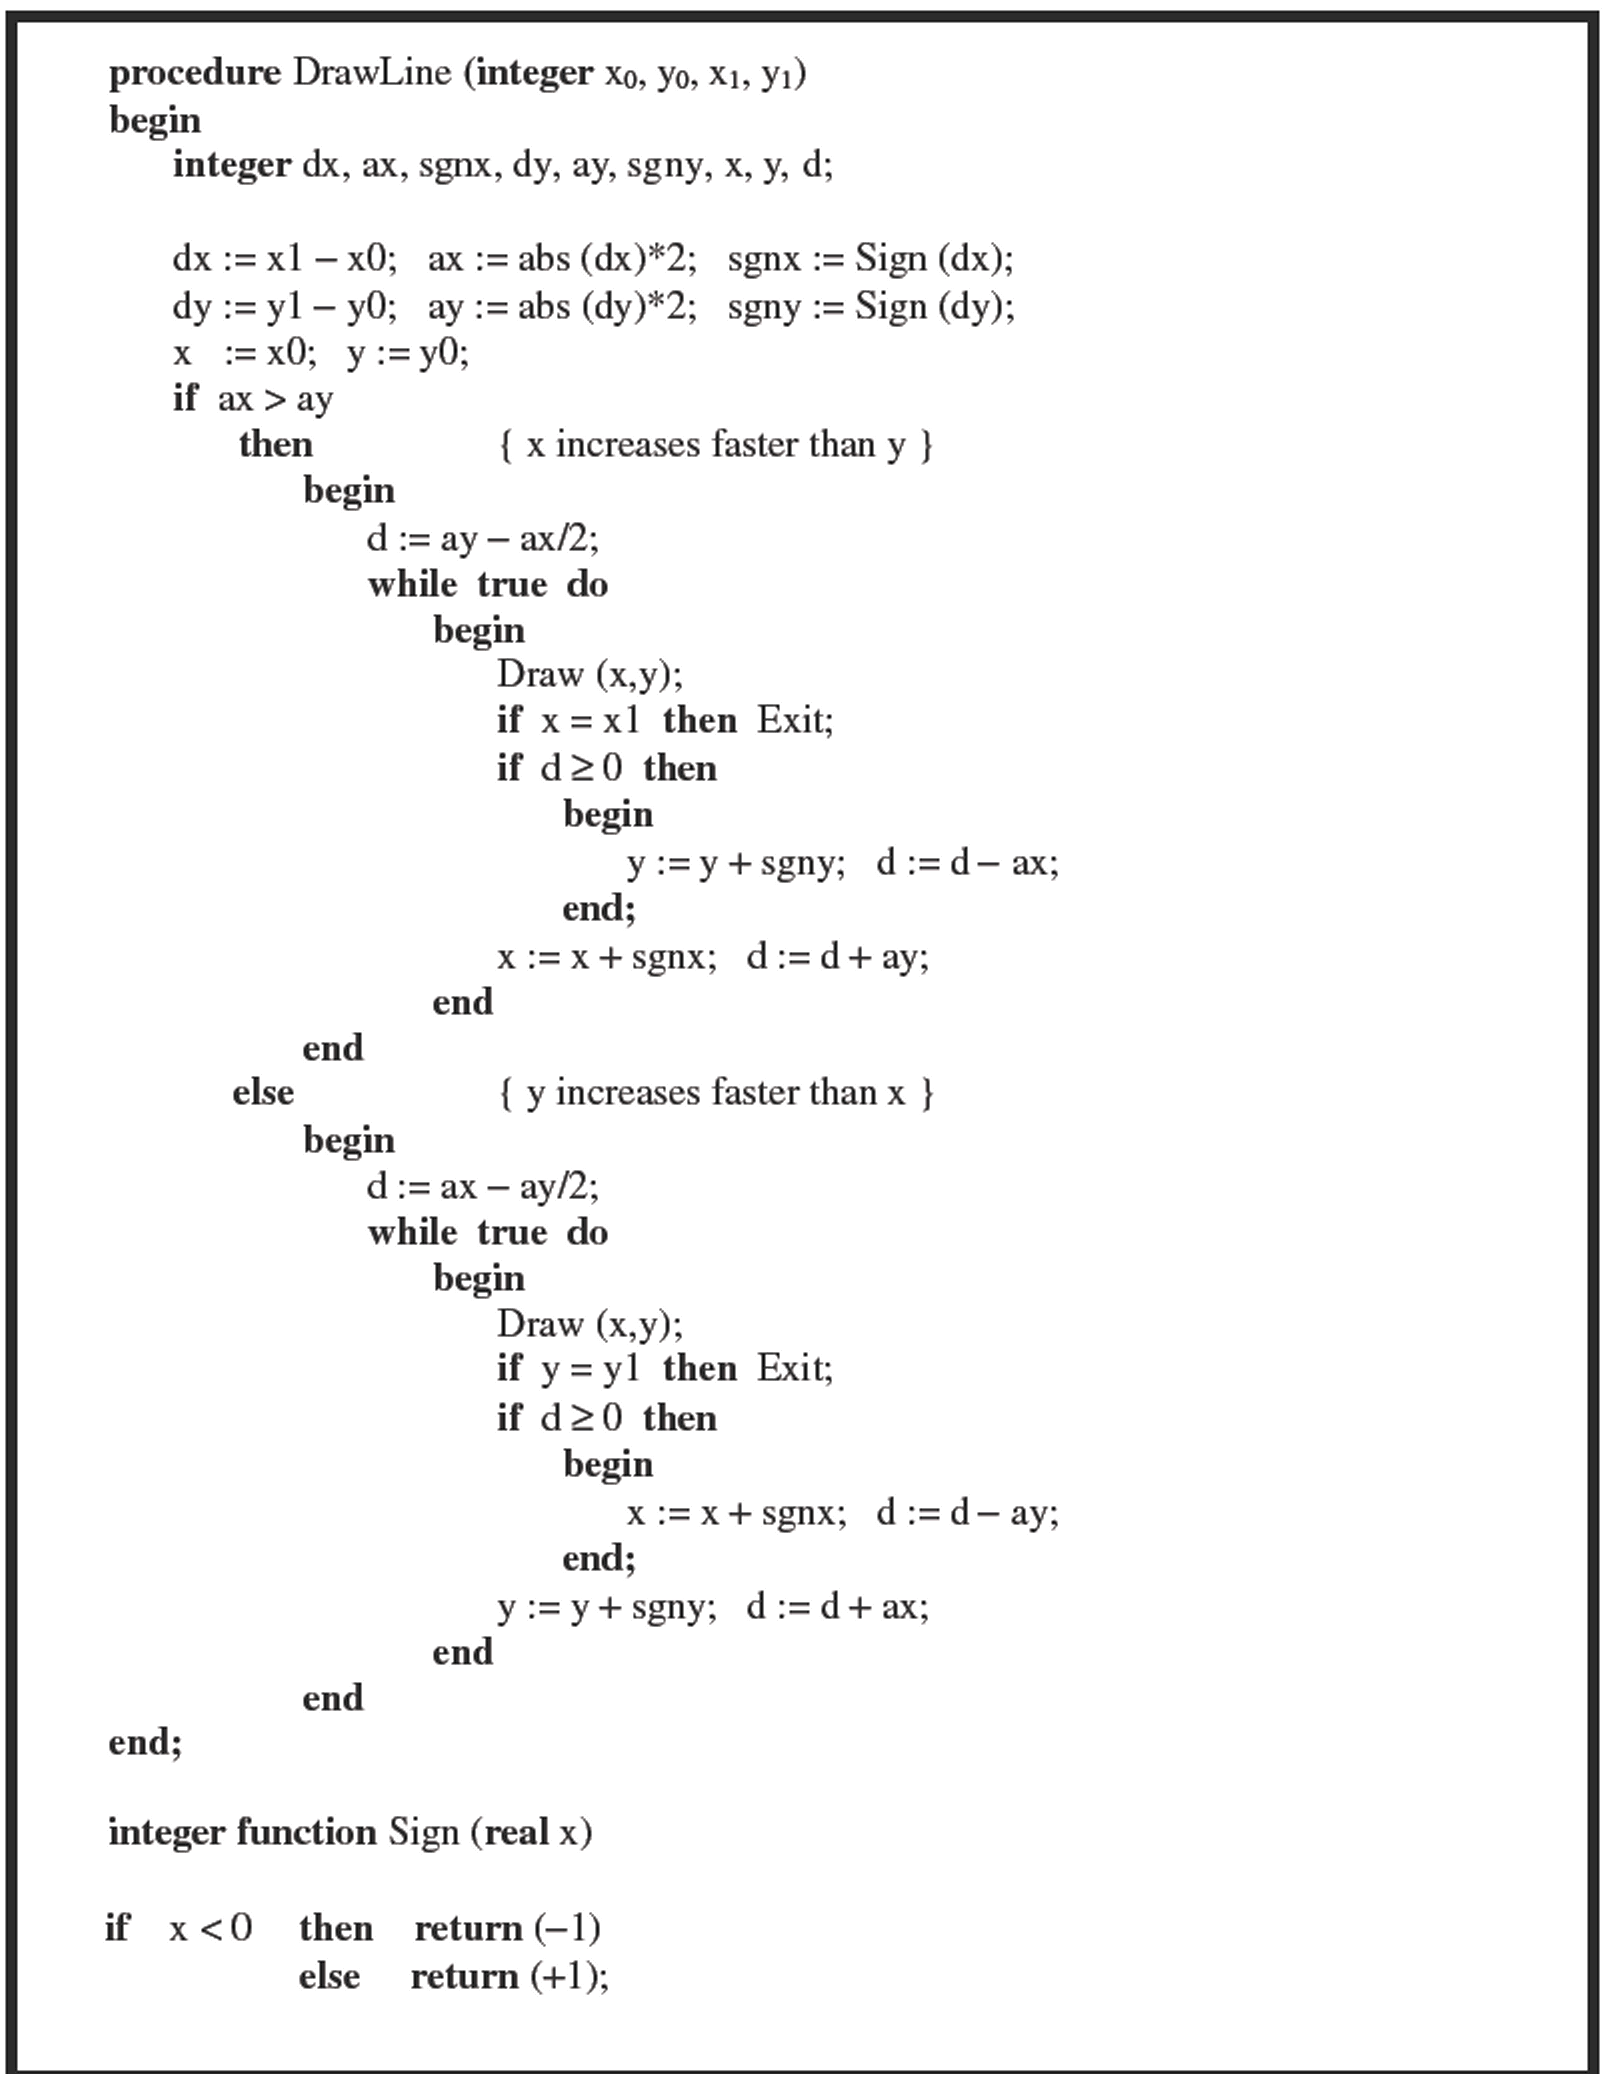 Bresenham Line Drawing Algorithm For M 1 : Raster algorithms basic computer graphics part